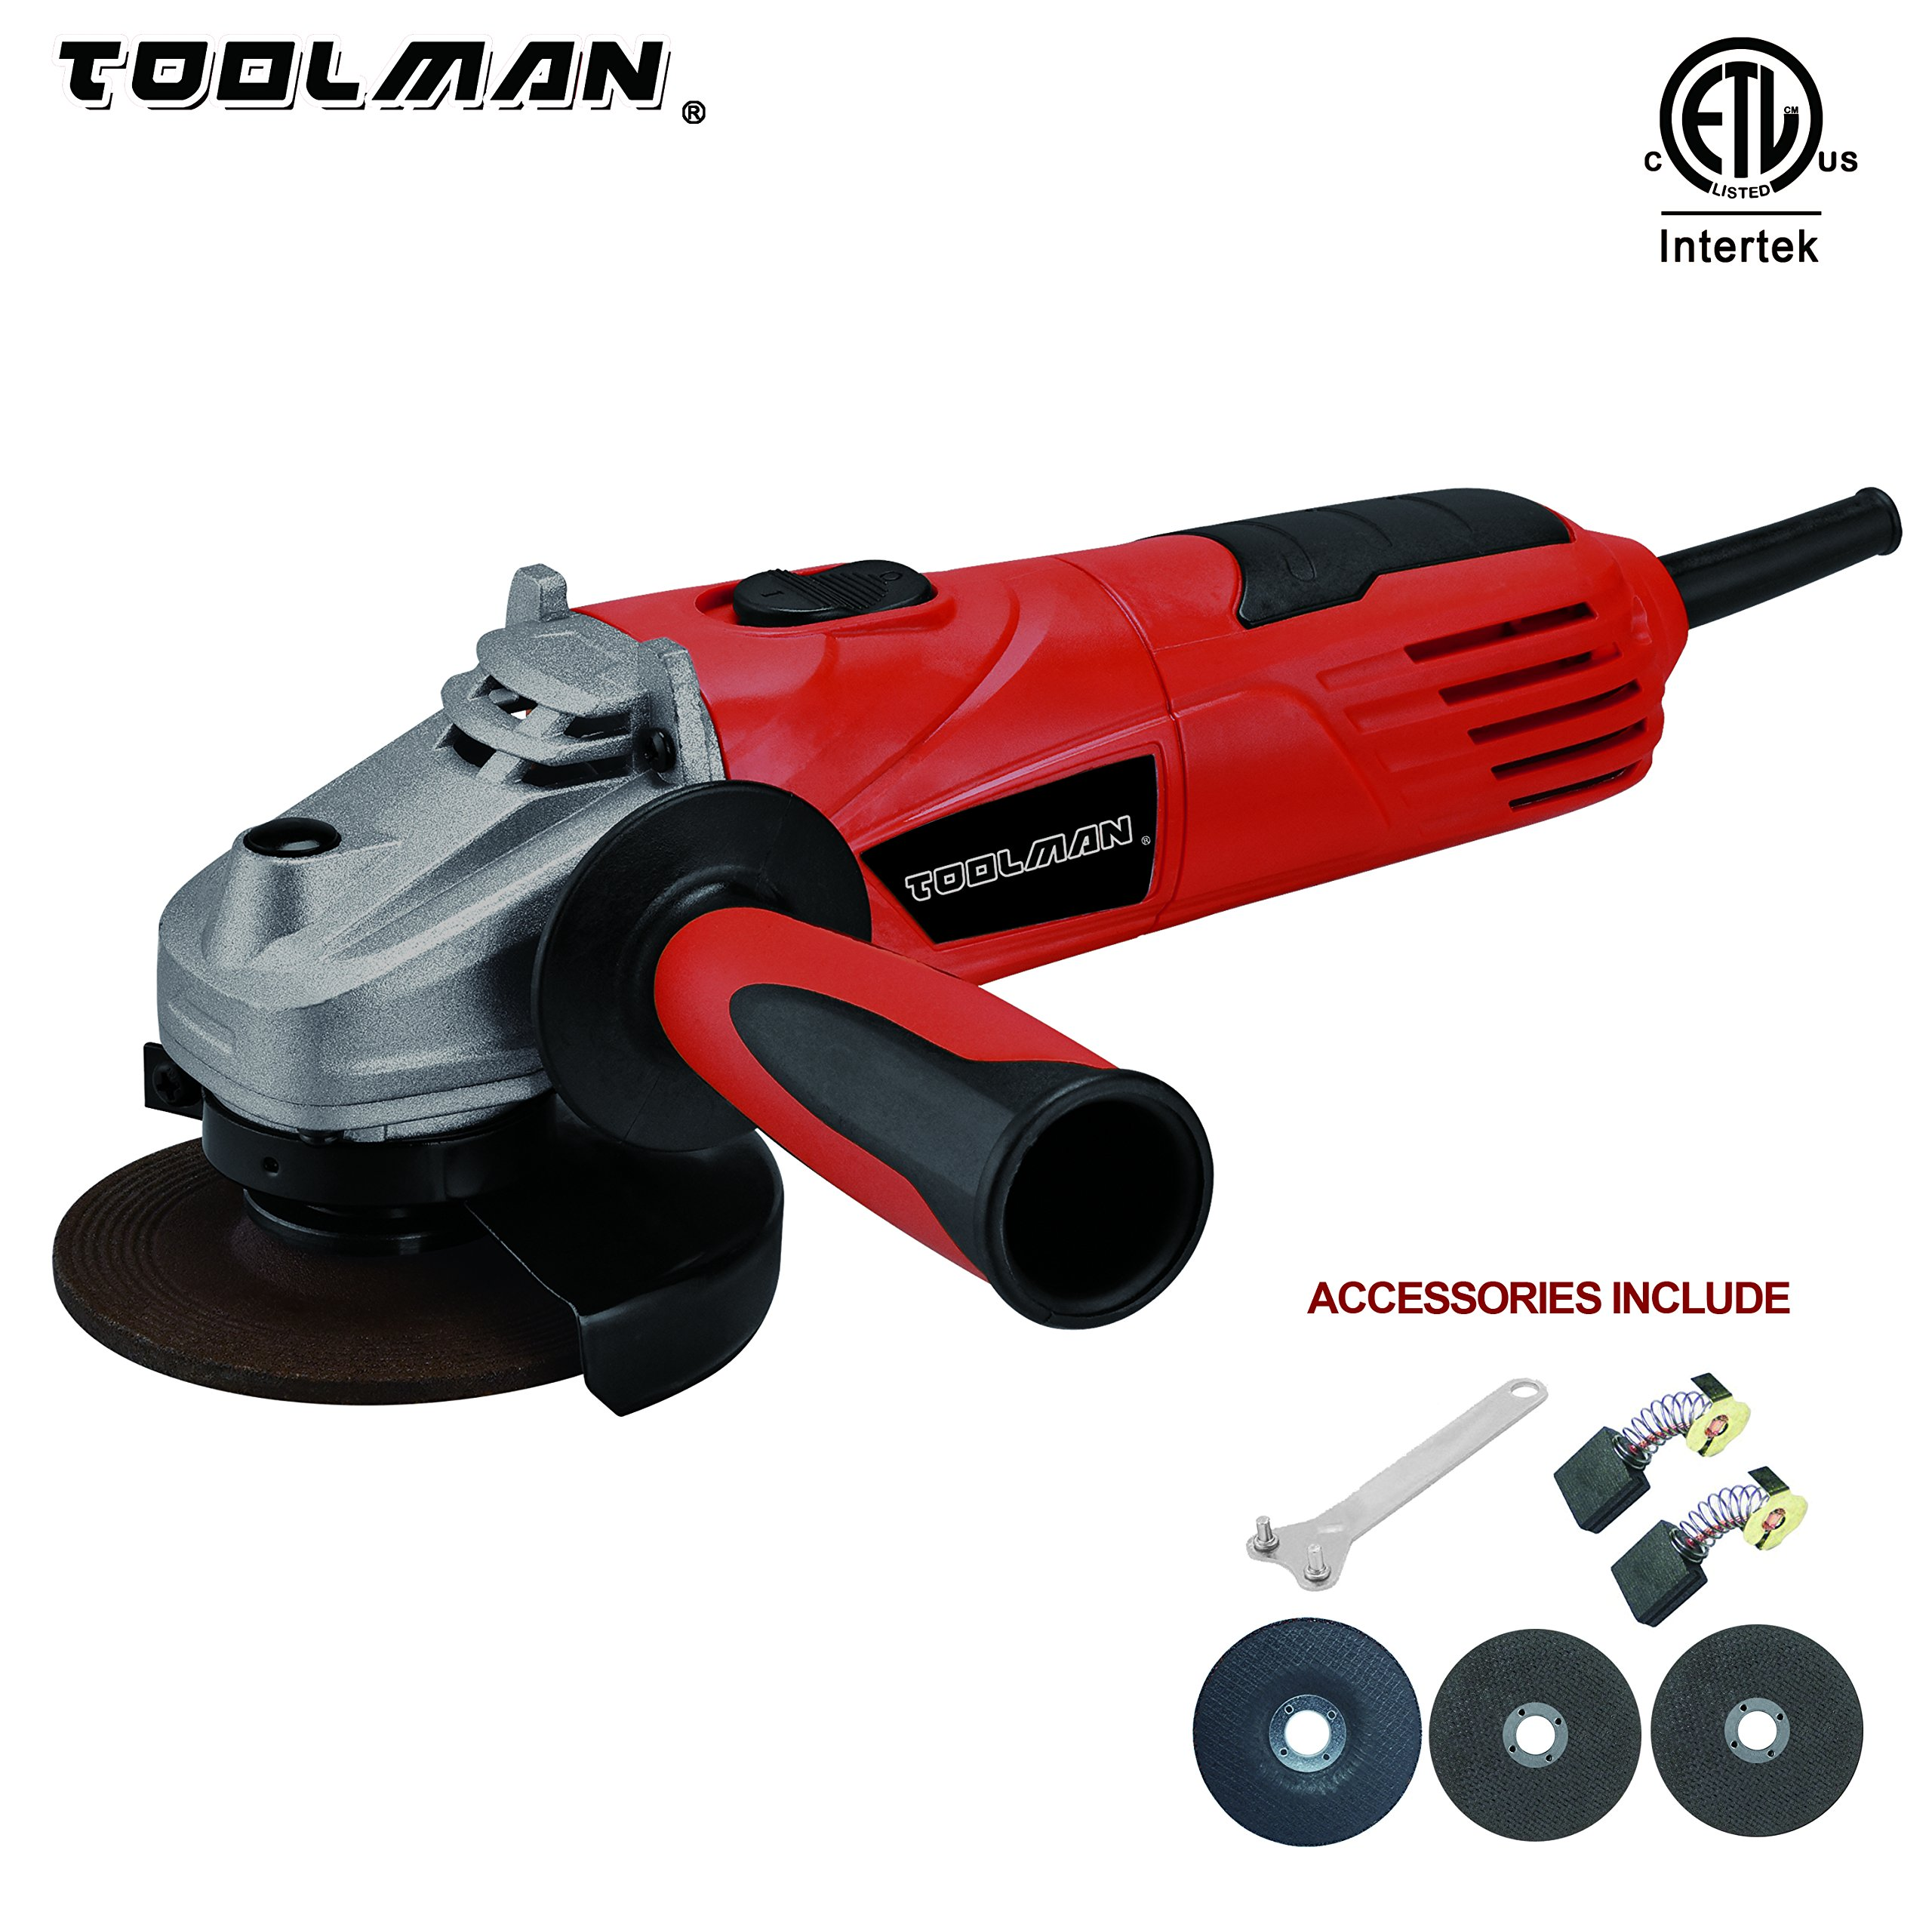 Toolman Electric Angle Grinder 4-1/2'' 4.8 Amps speed 11500BPM for cutting grinding metal or stone works with DeWalt Makita Ryobi